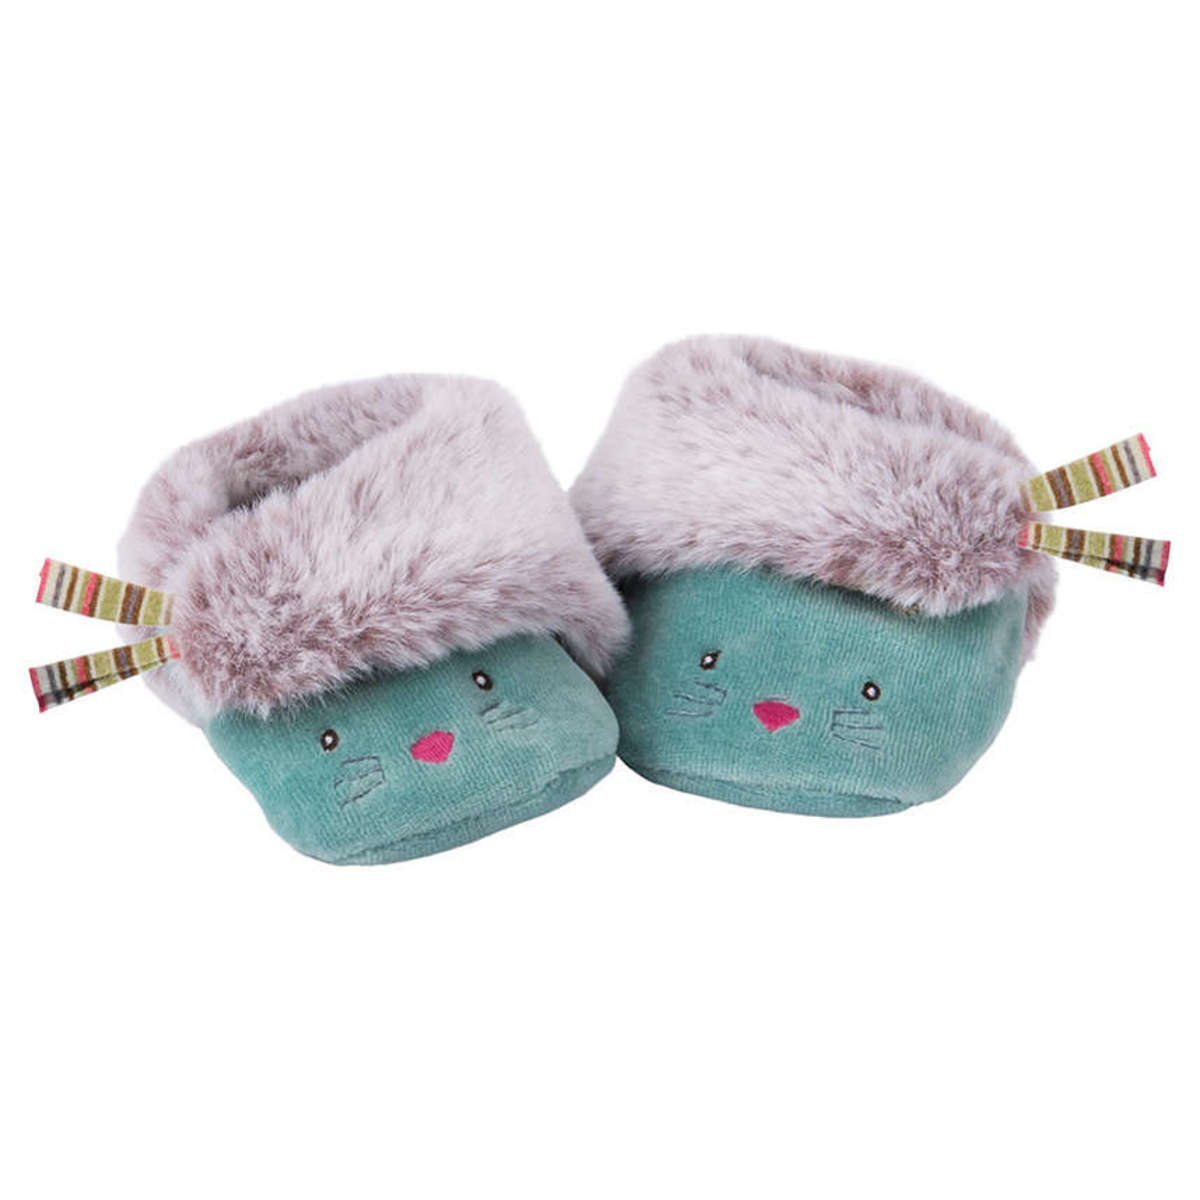 Chaussons & Chaussures Chaussons Chat Bleu Les Pachats - 16/17 Chaussons Chat Bleu Les Pachats - 16/17